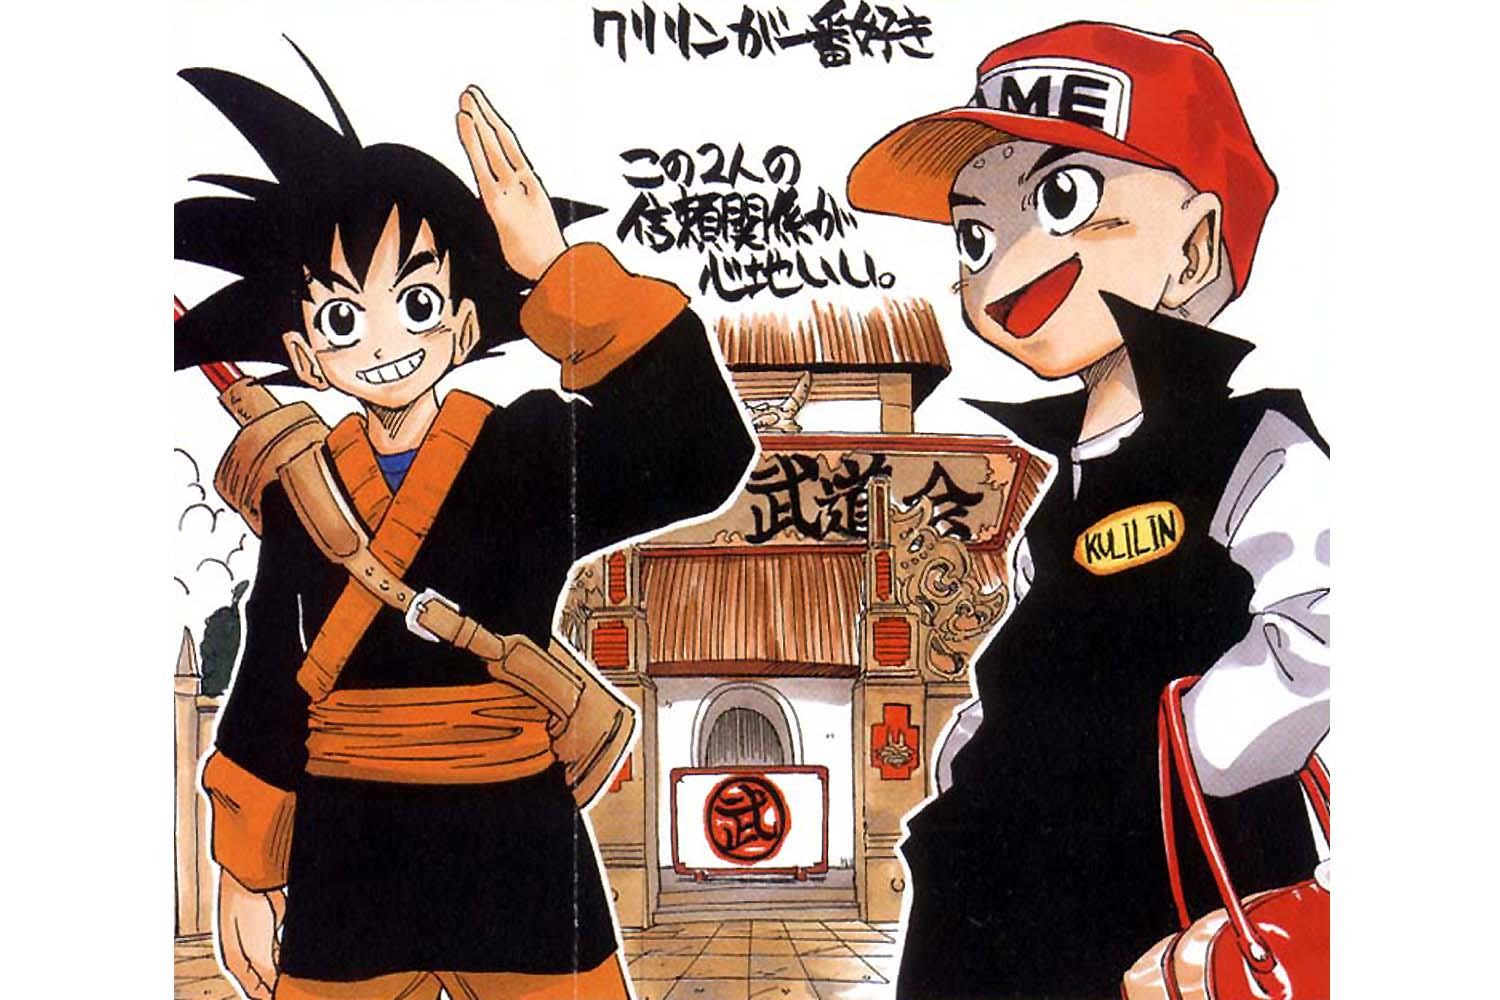 Dragon Ball Manga Comic Book Artists Yu Gi Oh One Piece Bleach Gin Tama Jojos Bizarre Adventure Slam Dunk